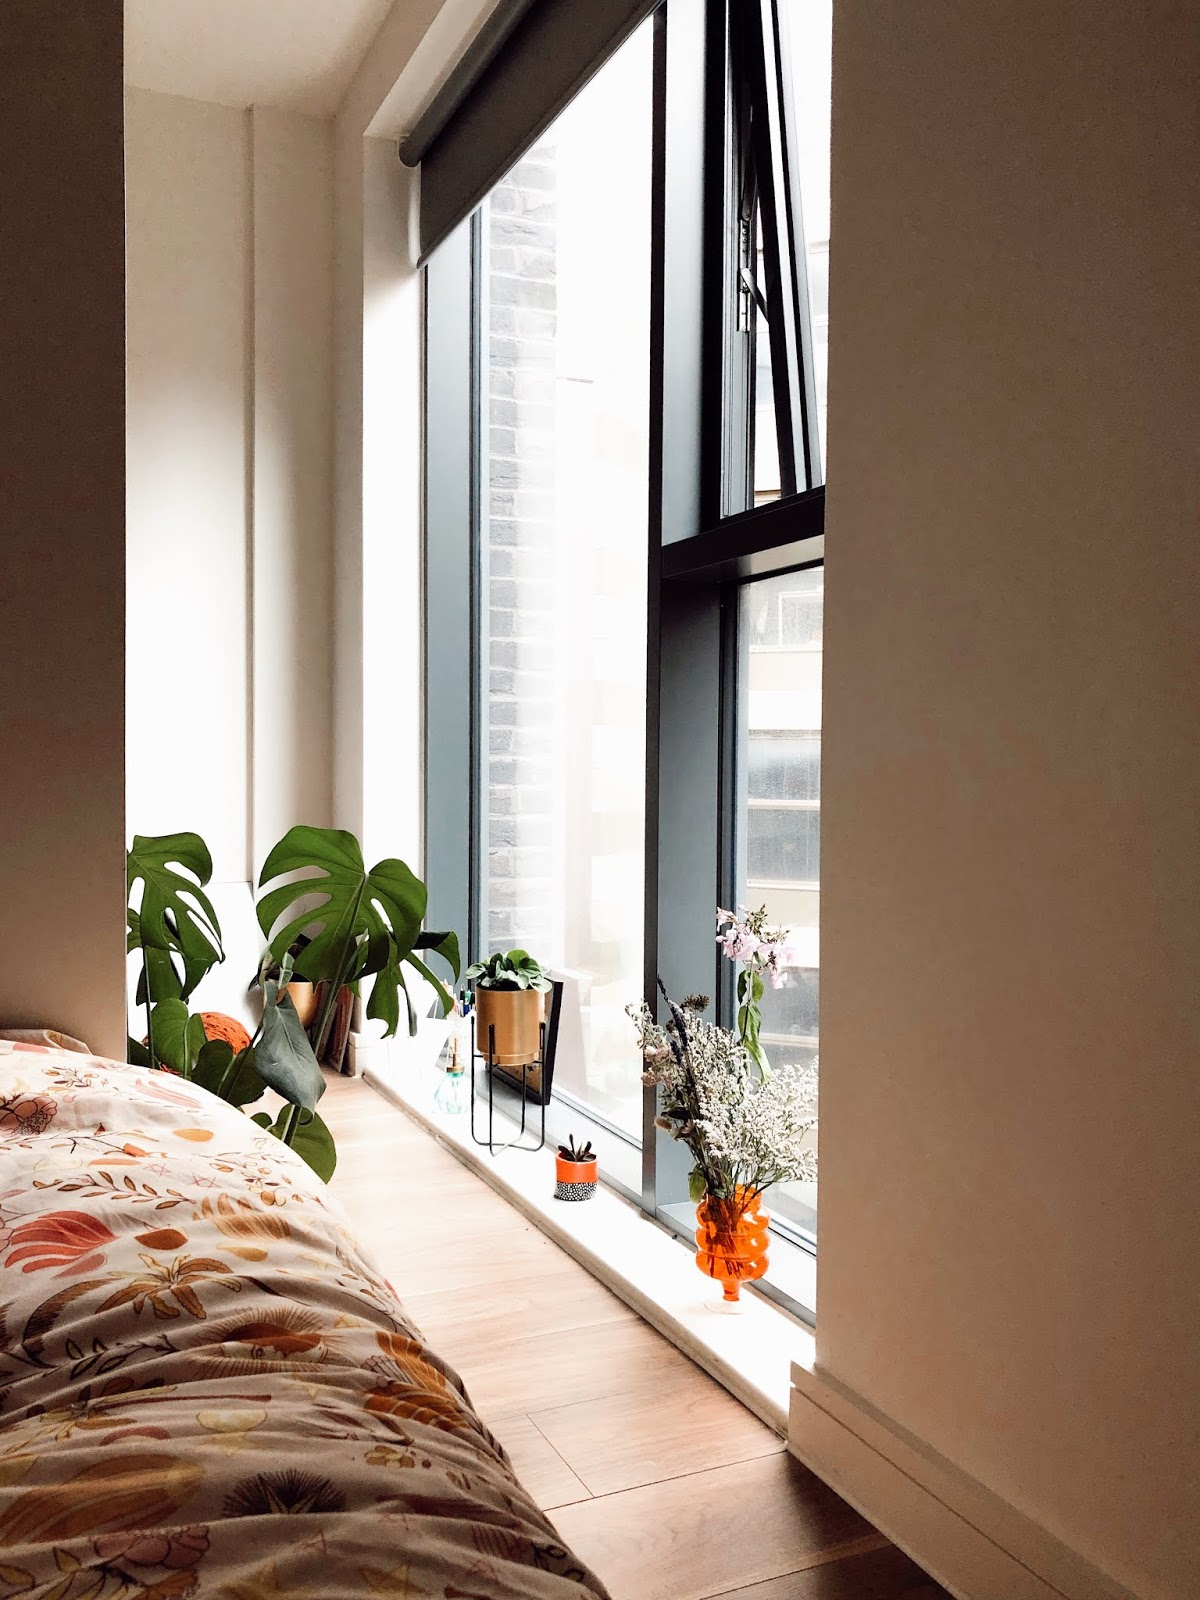 view looking out of window from bed in studio apartment with houseplants on window ledge